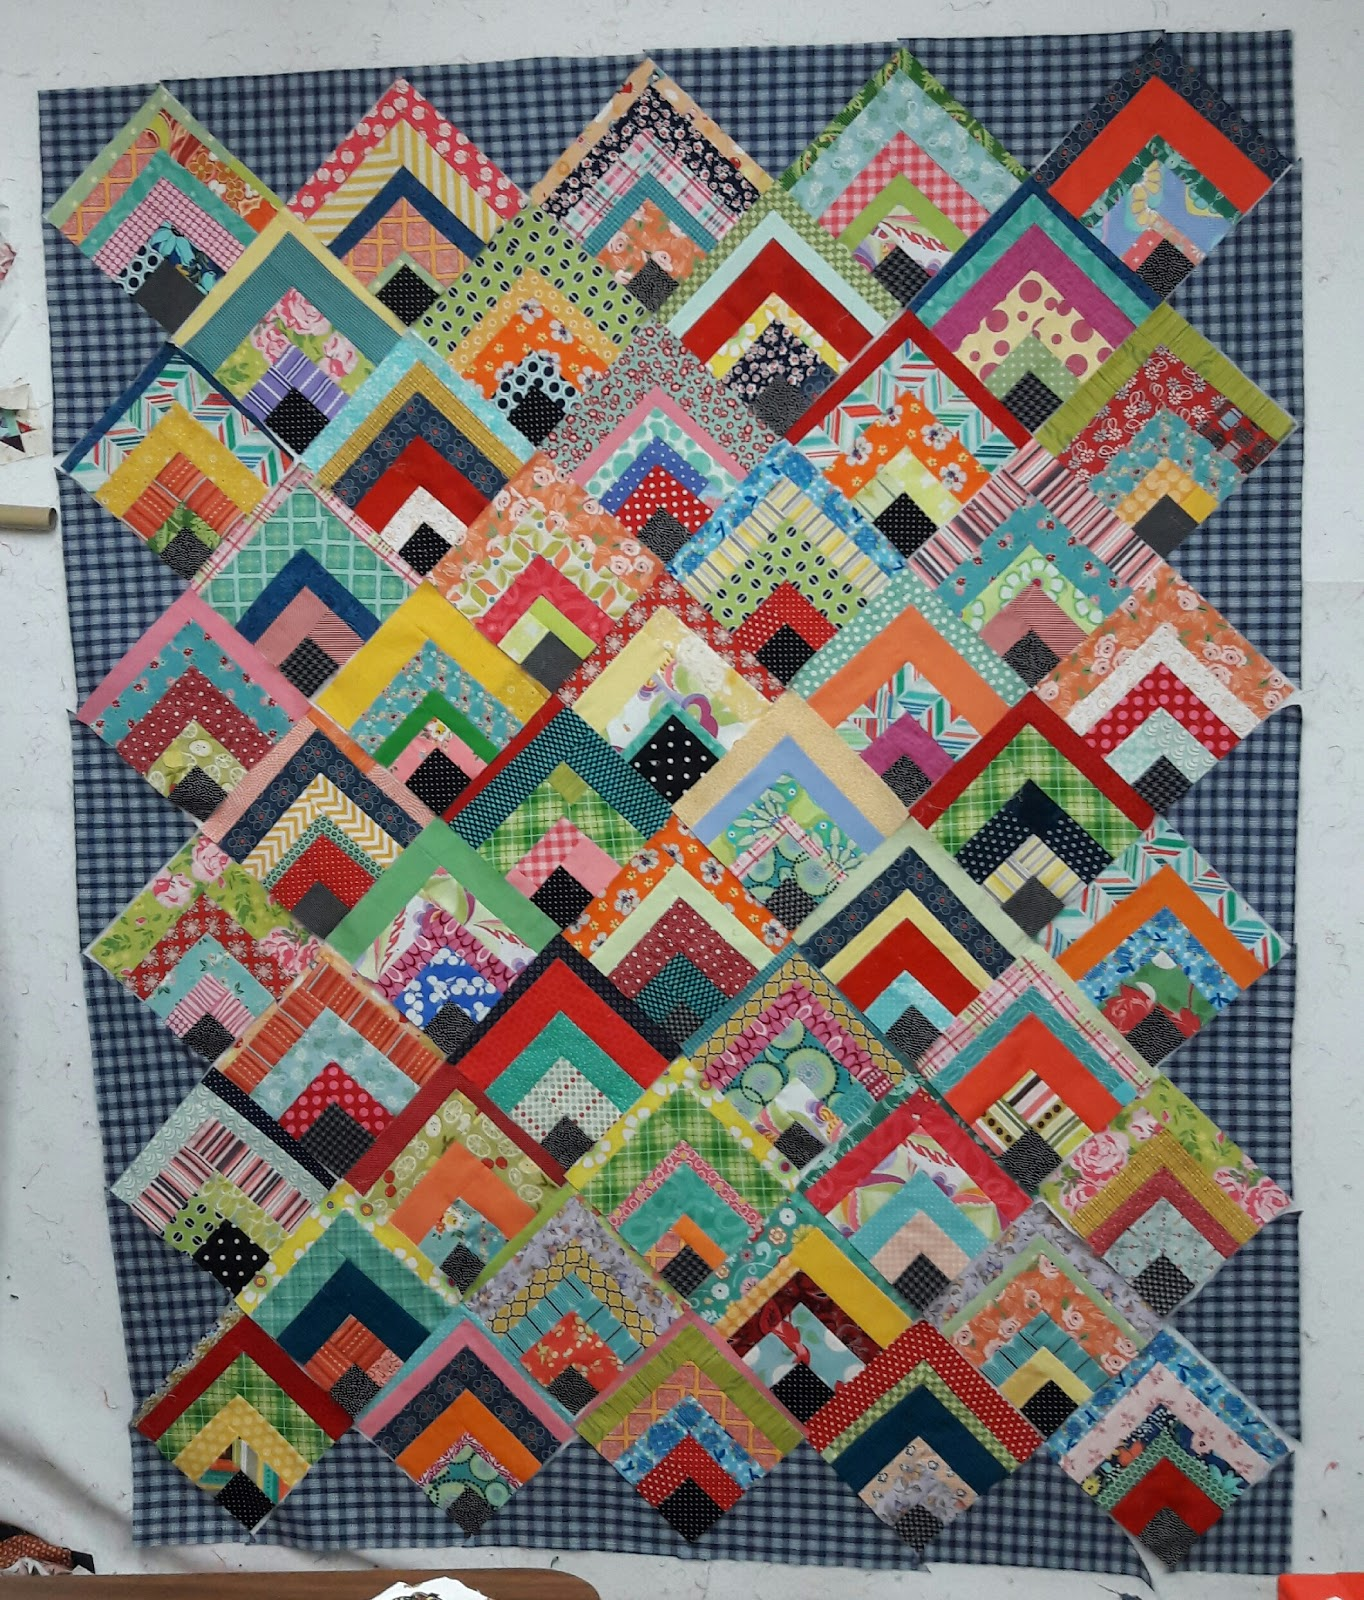 """Scrappy Quarter Log Cabin Quilt"" a Free Scrappy Quilt Pattern designed by Em from Aunt Em's Quilts"